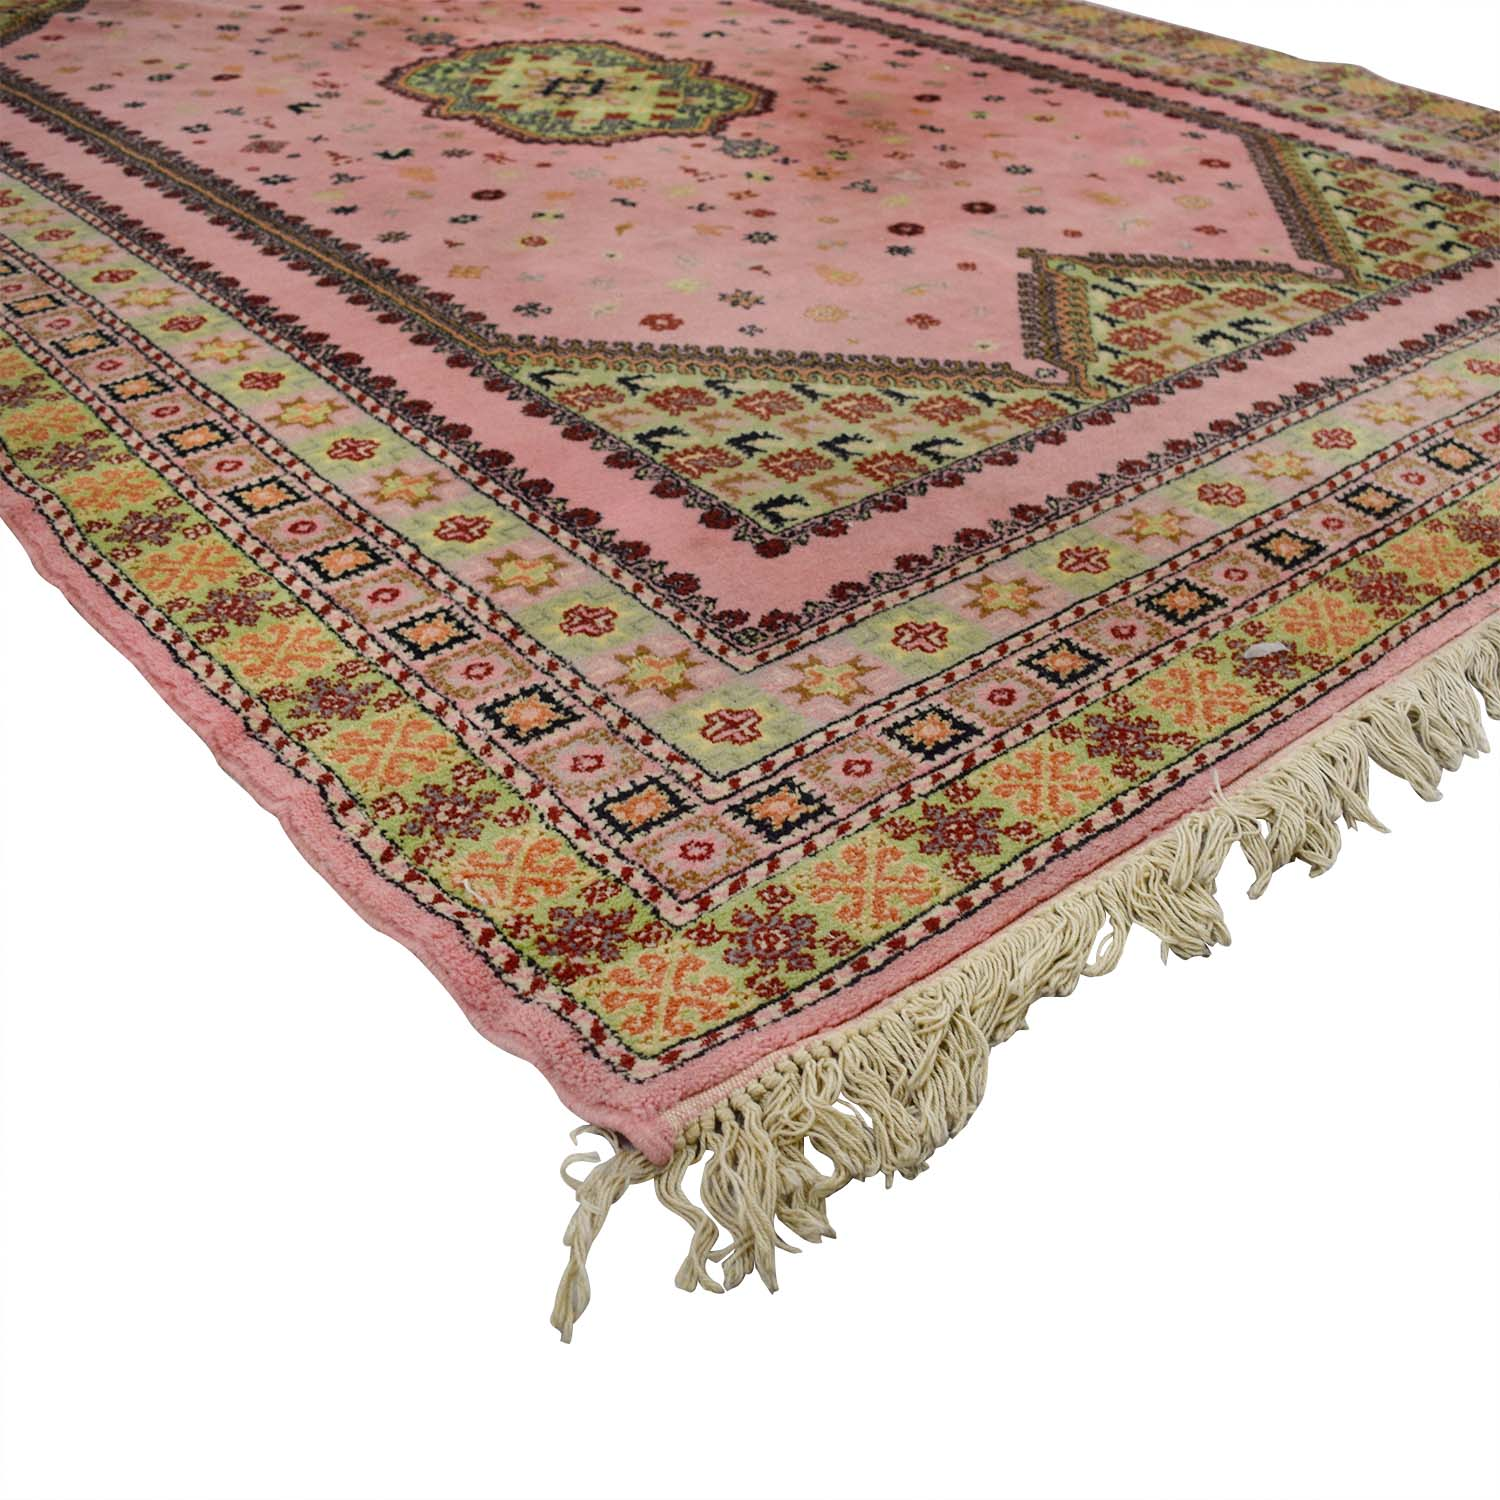 Pink And Beige Moroccan Rug / Decor